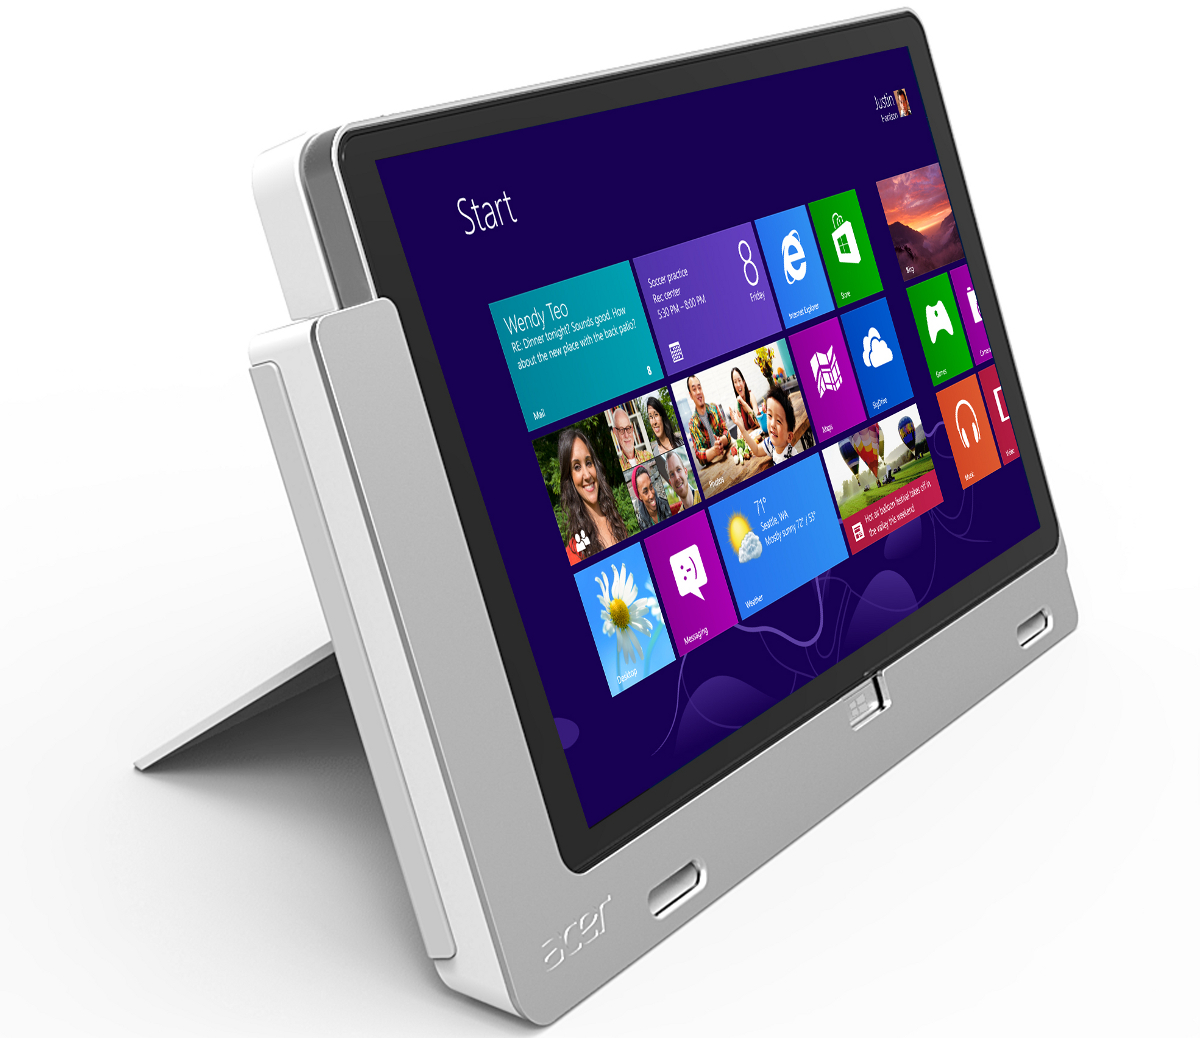 acer iconia w3 une tablette 8 pouces sous windows 8 pro itespresso. Black Bedroom Furniture Sets. Home Design Ideas